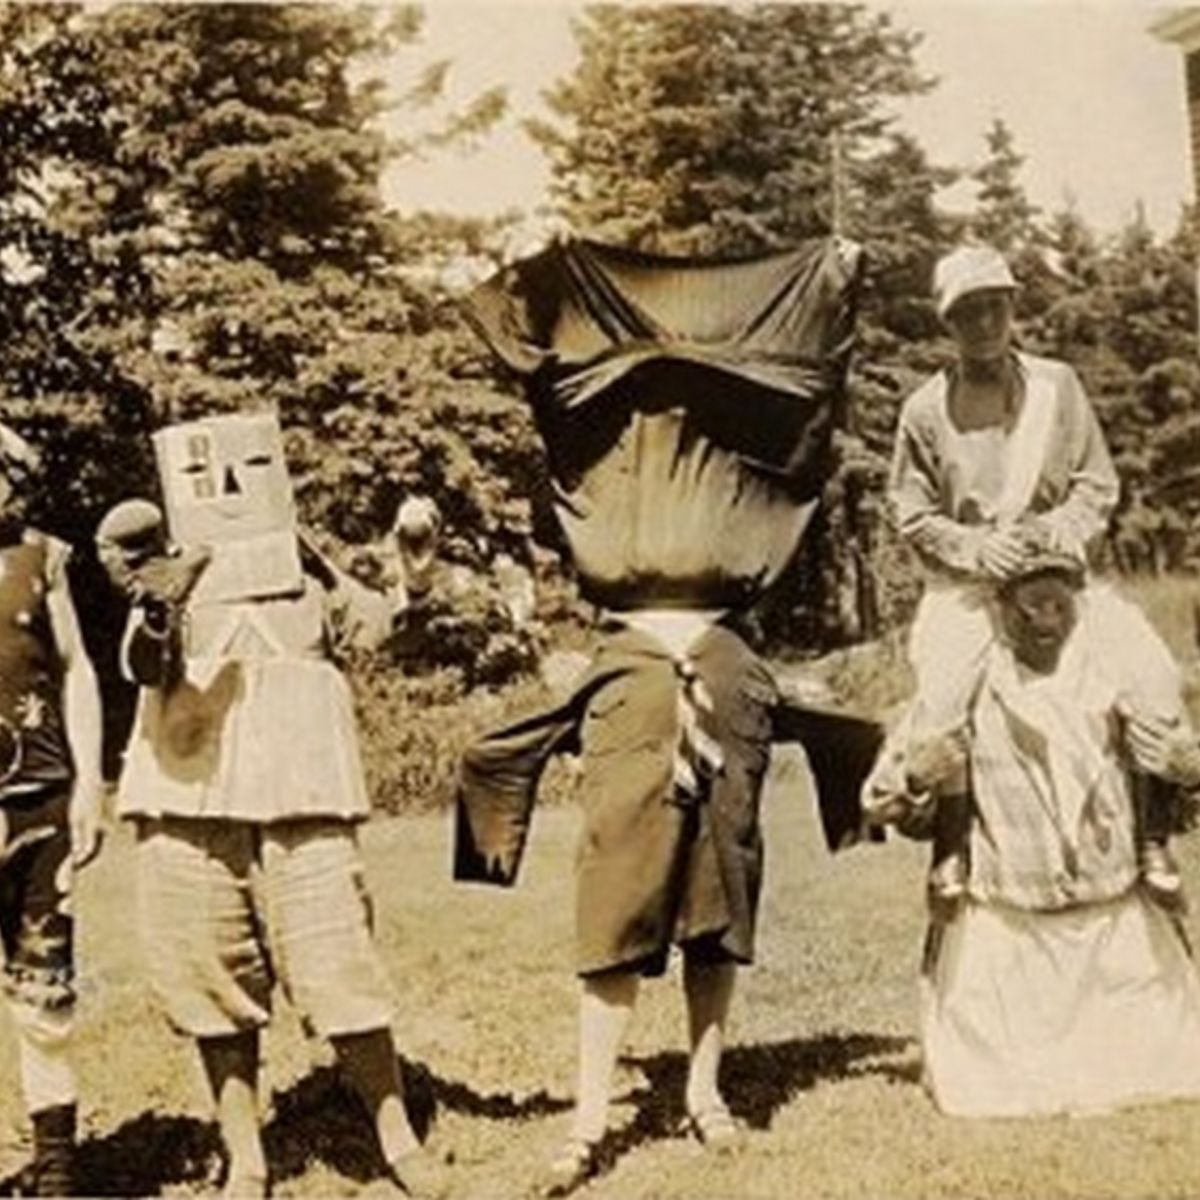 Old Timey Robot Costume